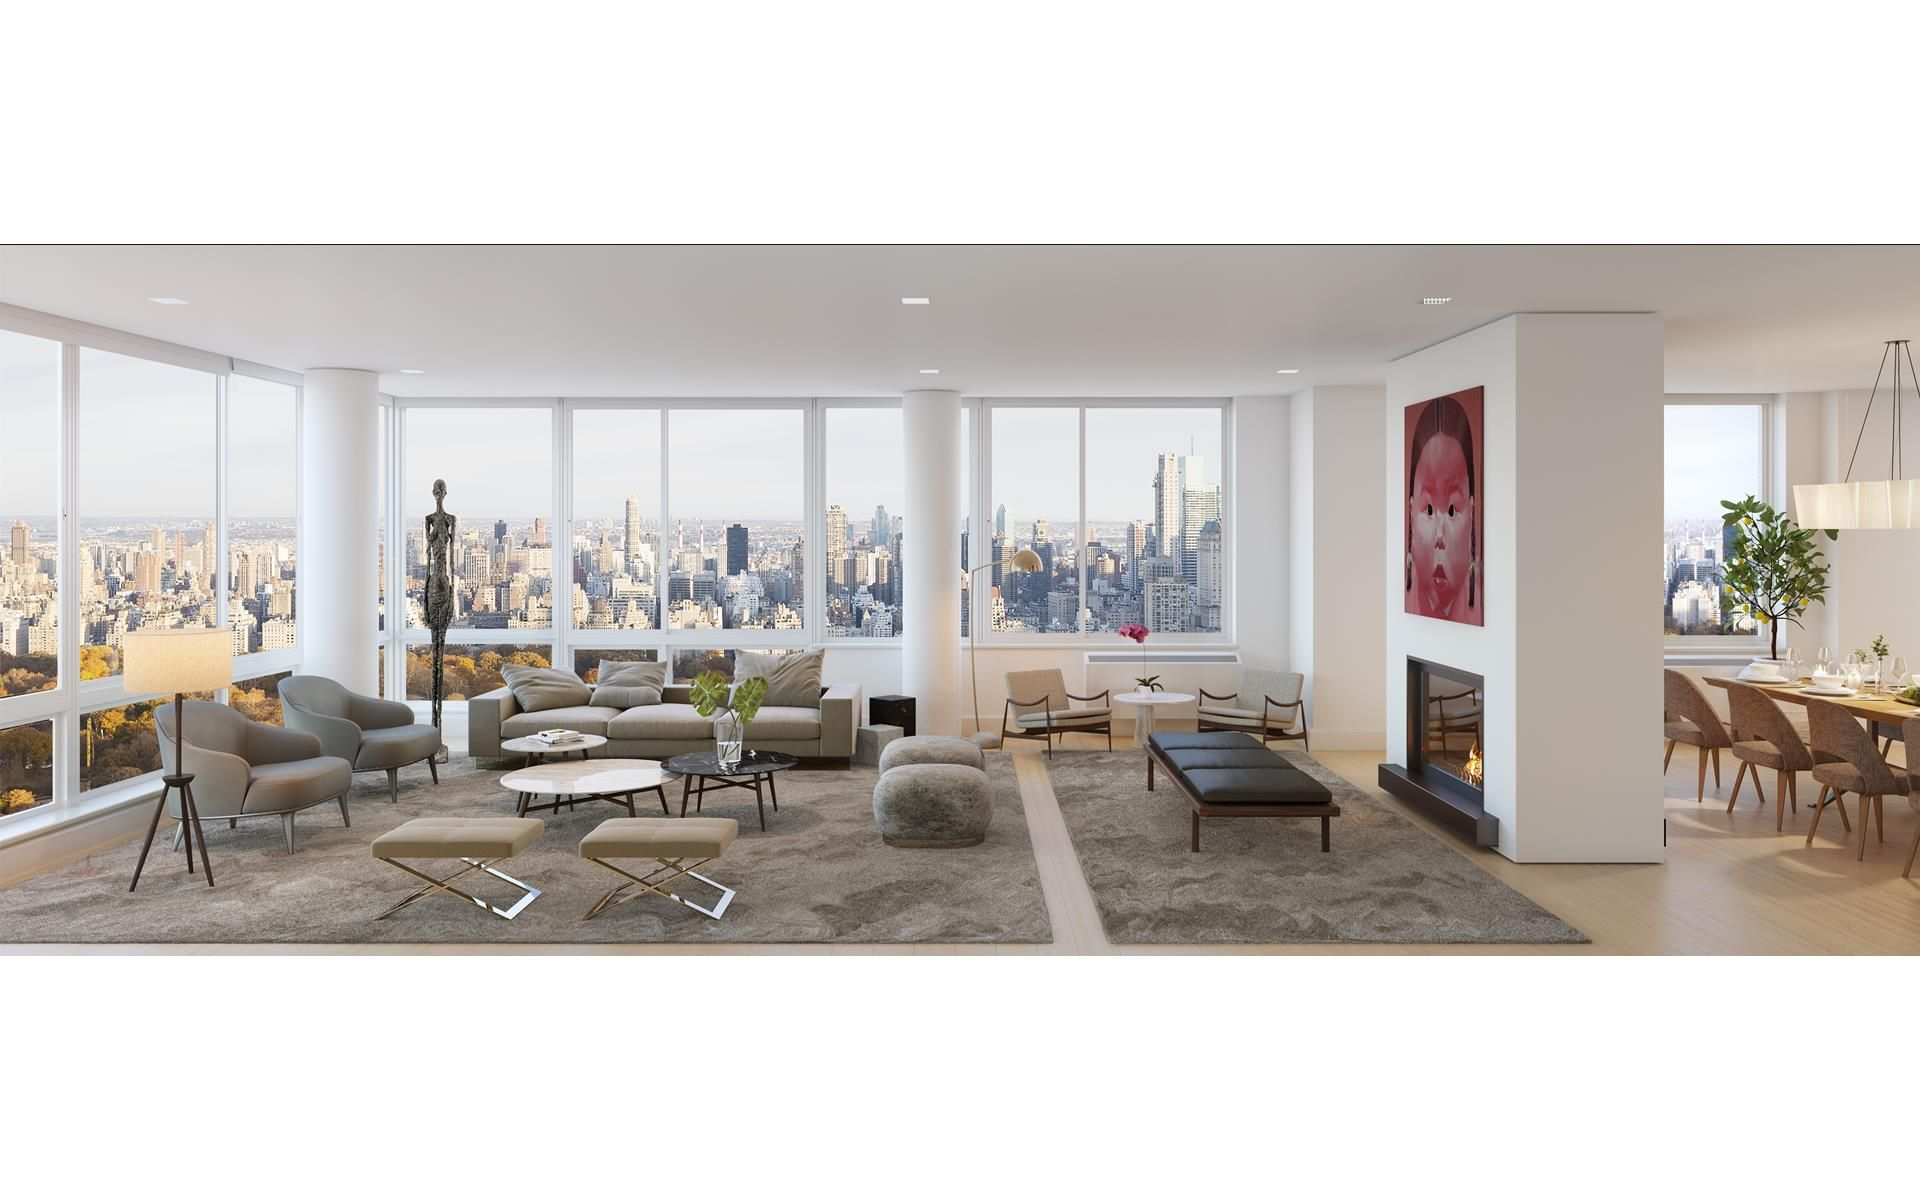 The millennium tower 101 west 67th st ph2abgh upper west side new